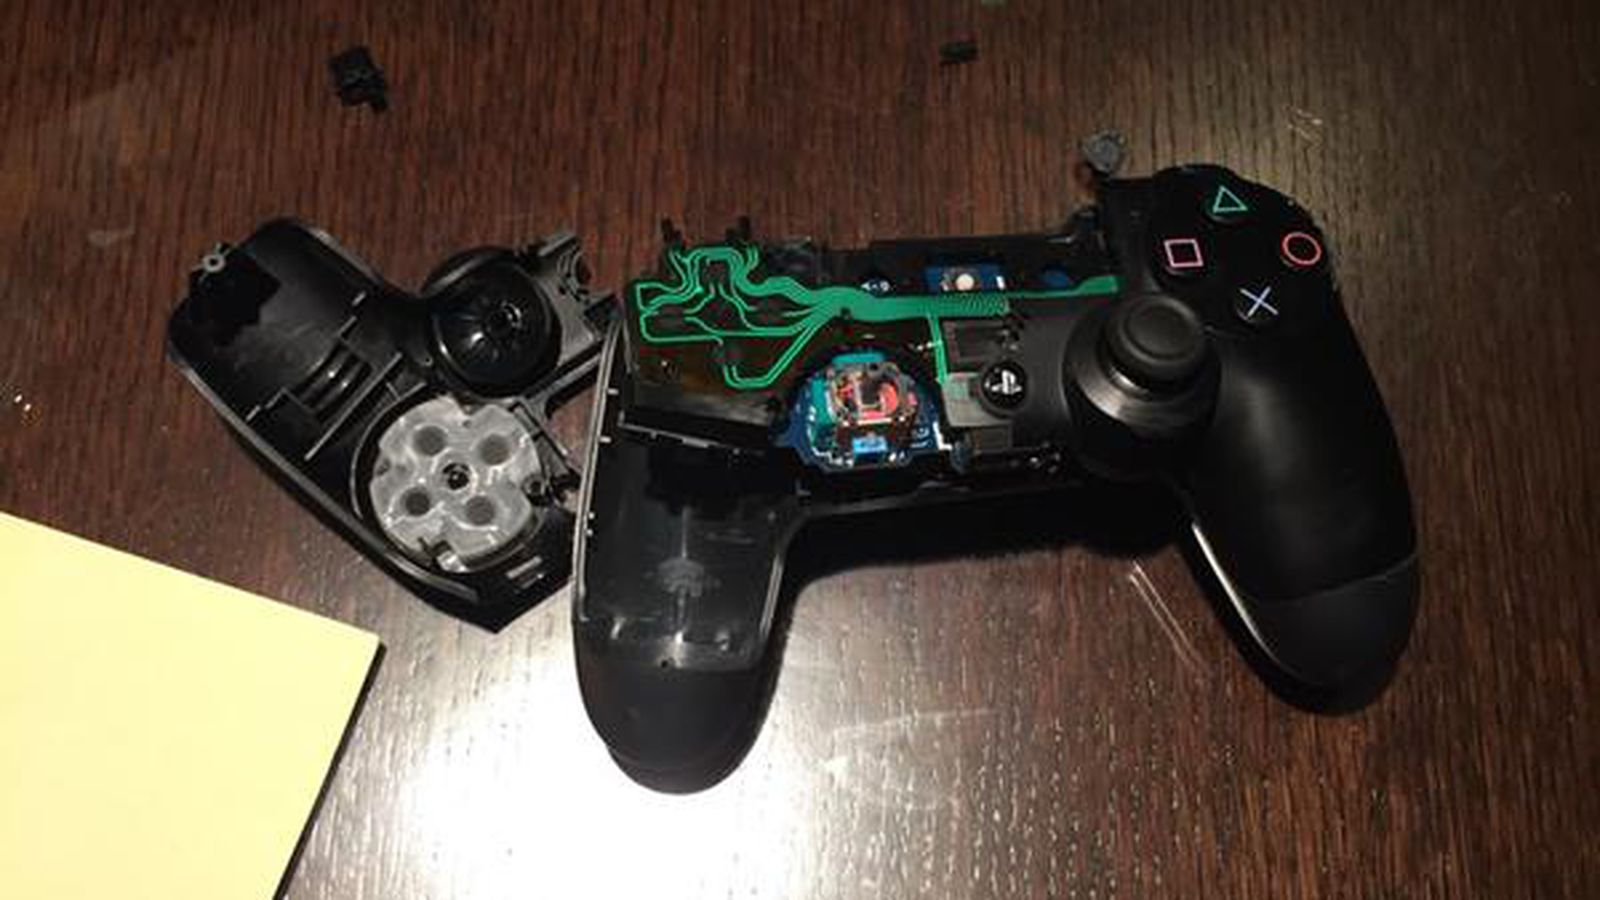 Game Controllers For Ps4 : Dani carvajal got angry playing video games and broke a